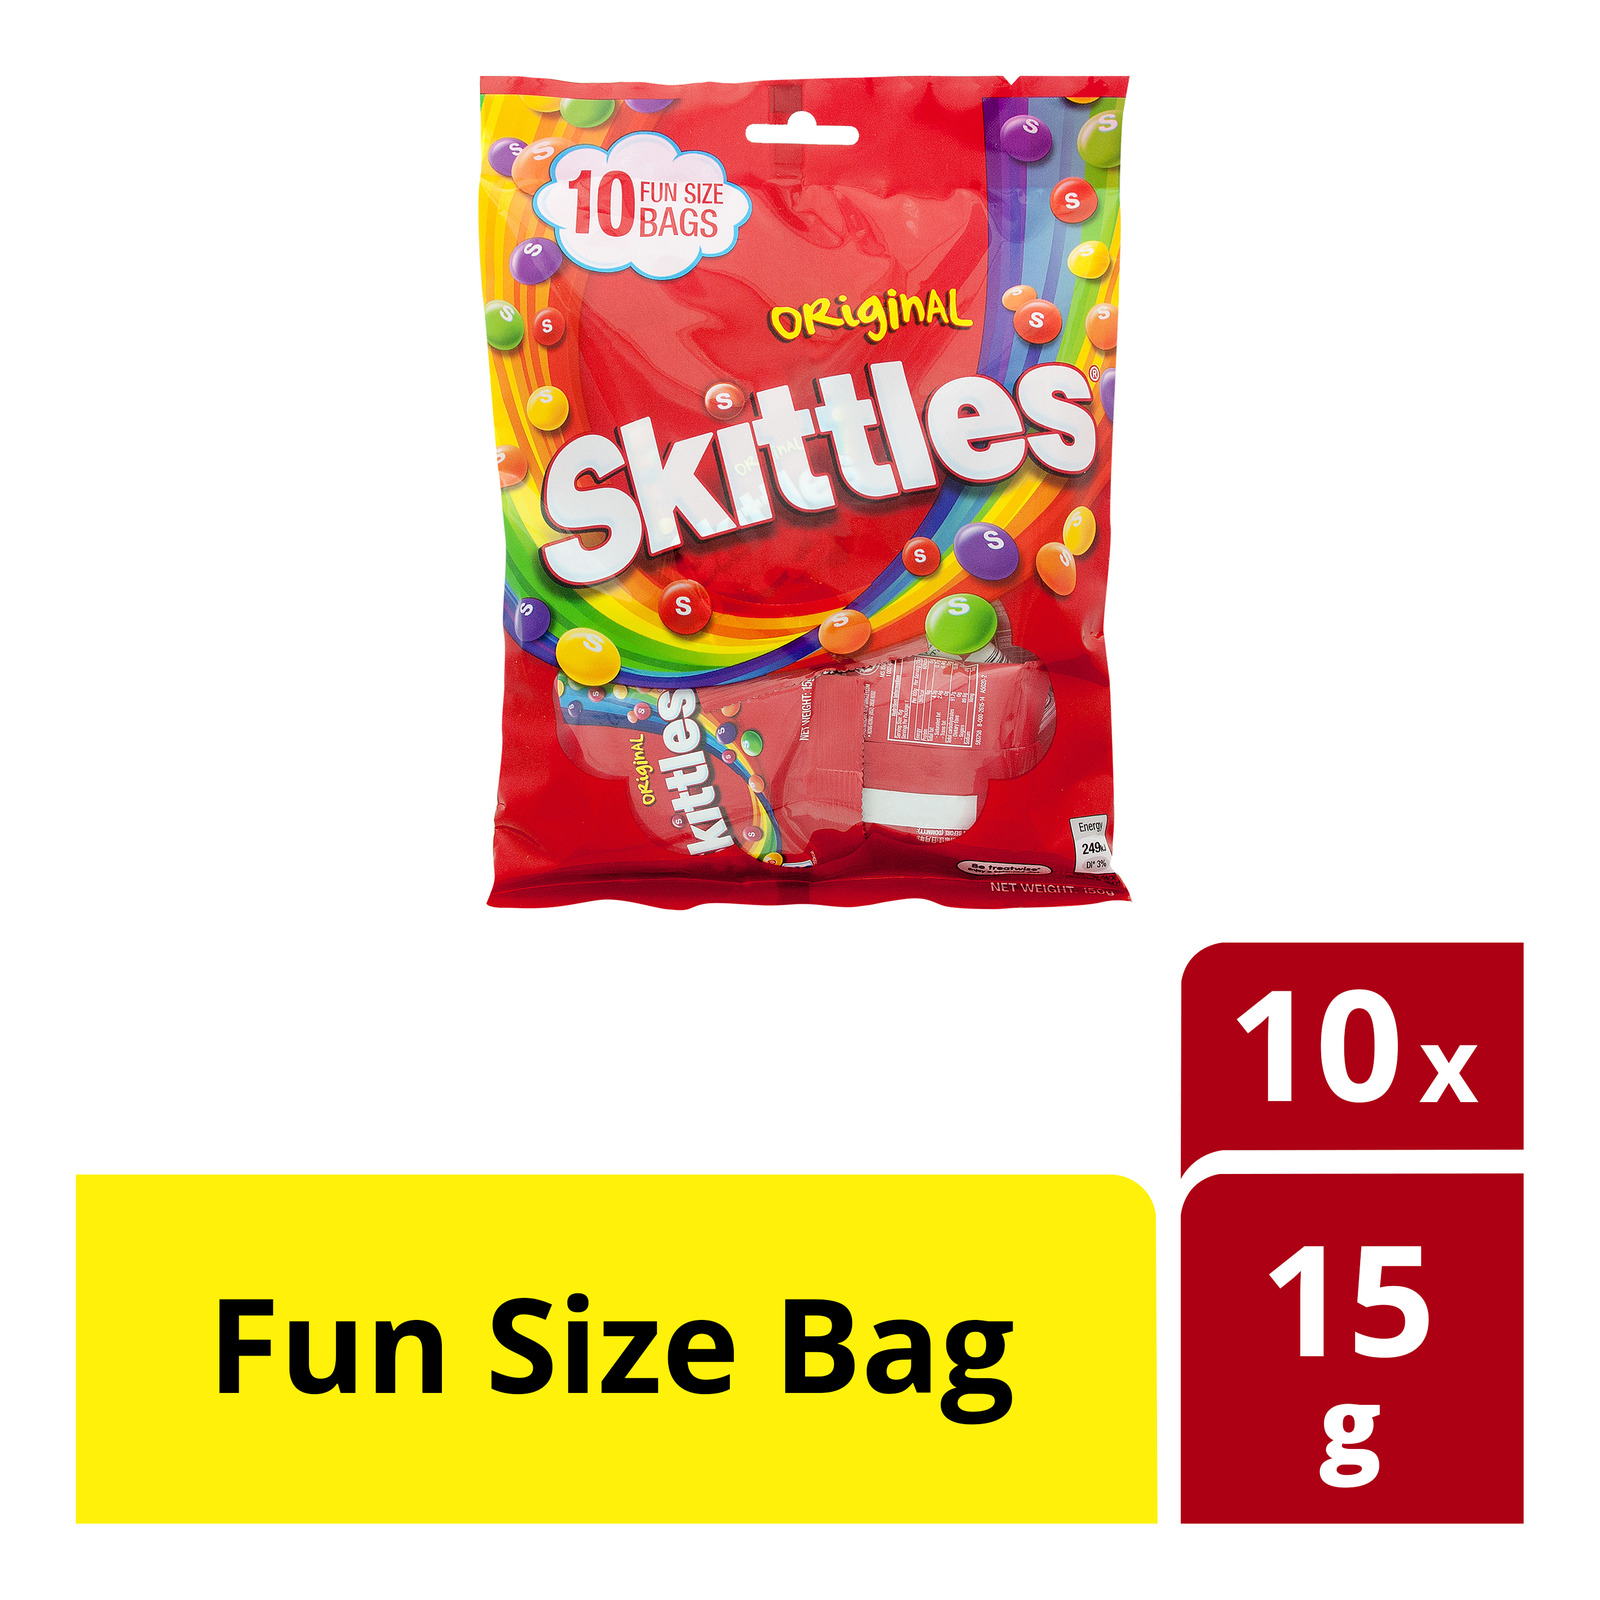 Skittles Candies - Original (Fun Size Bag)